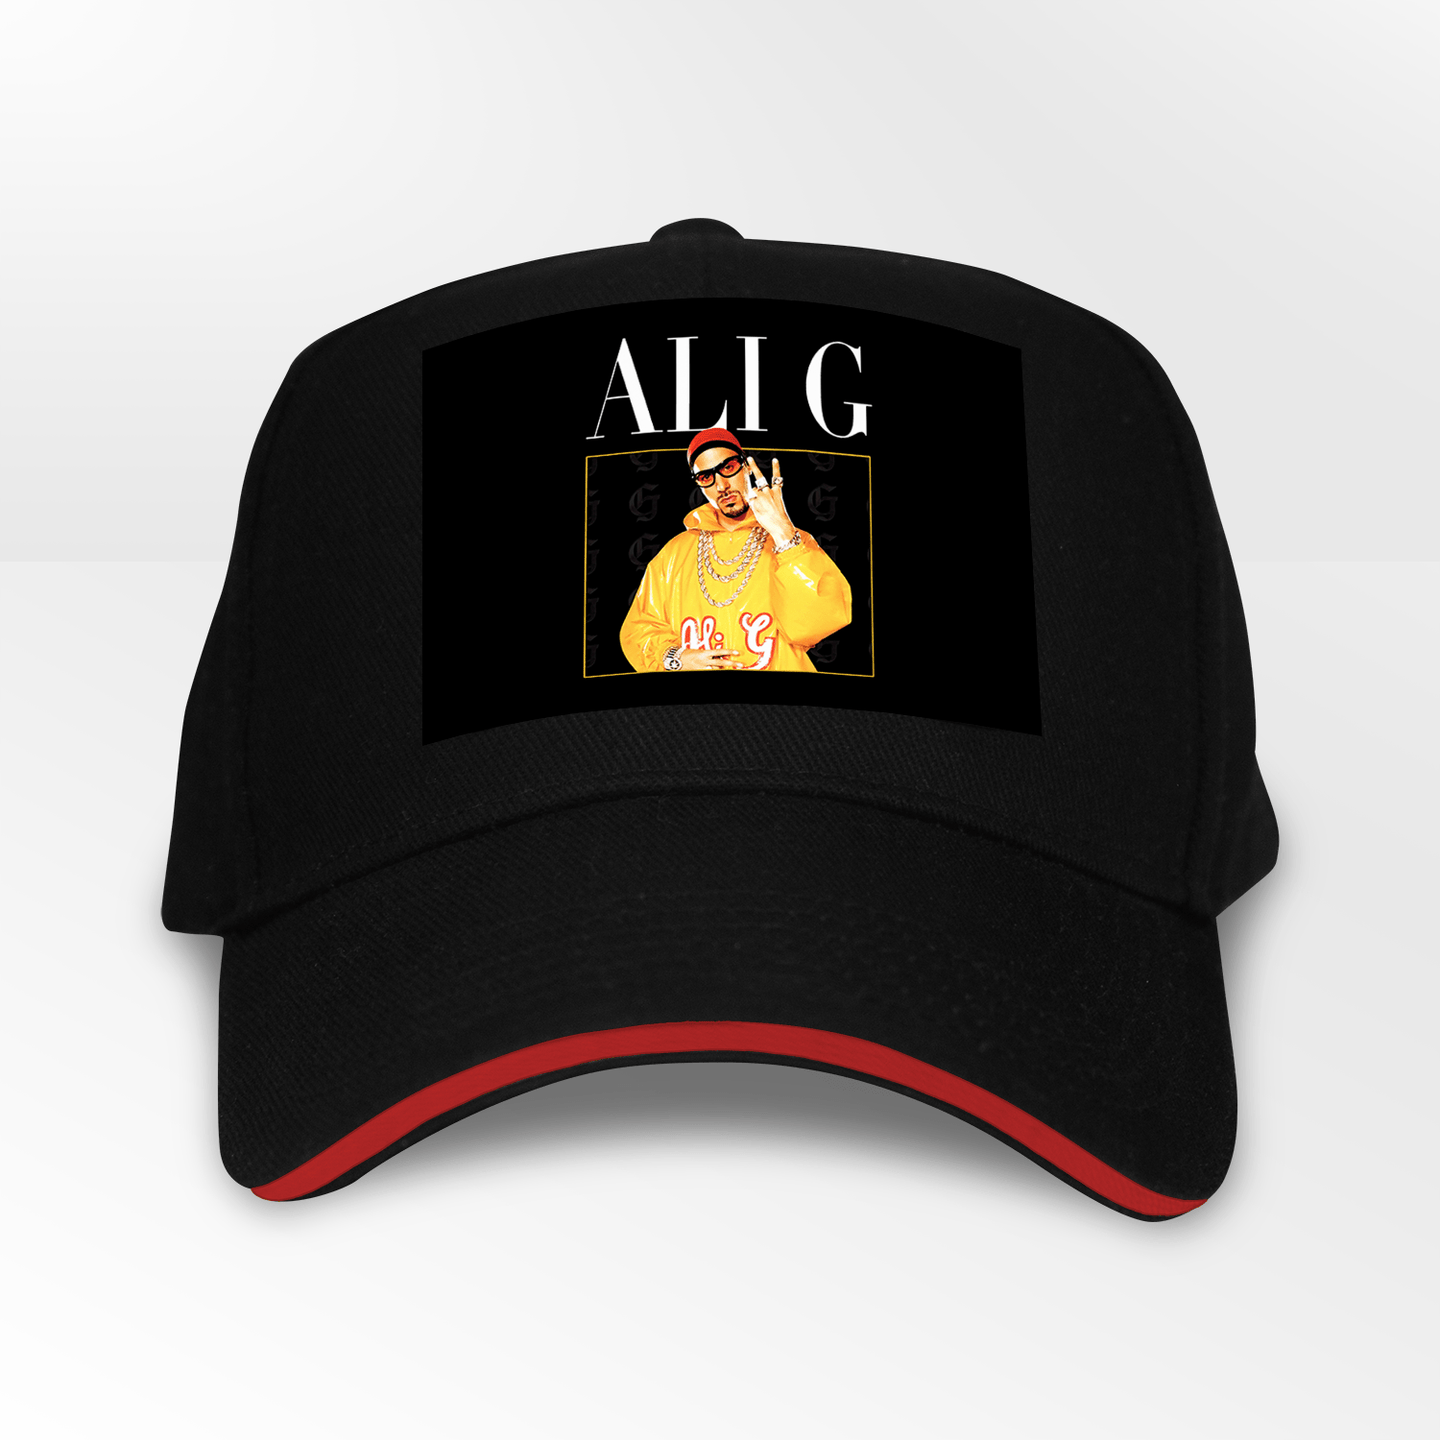 Ali G Sacha Baron Cohen 5 Panel Throwback Cap - Timeless Tees